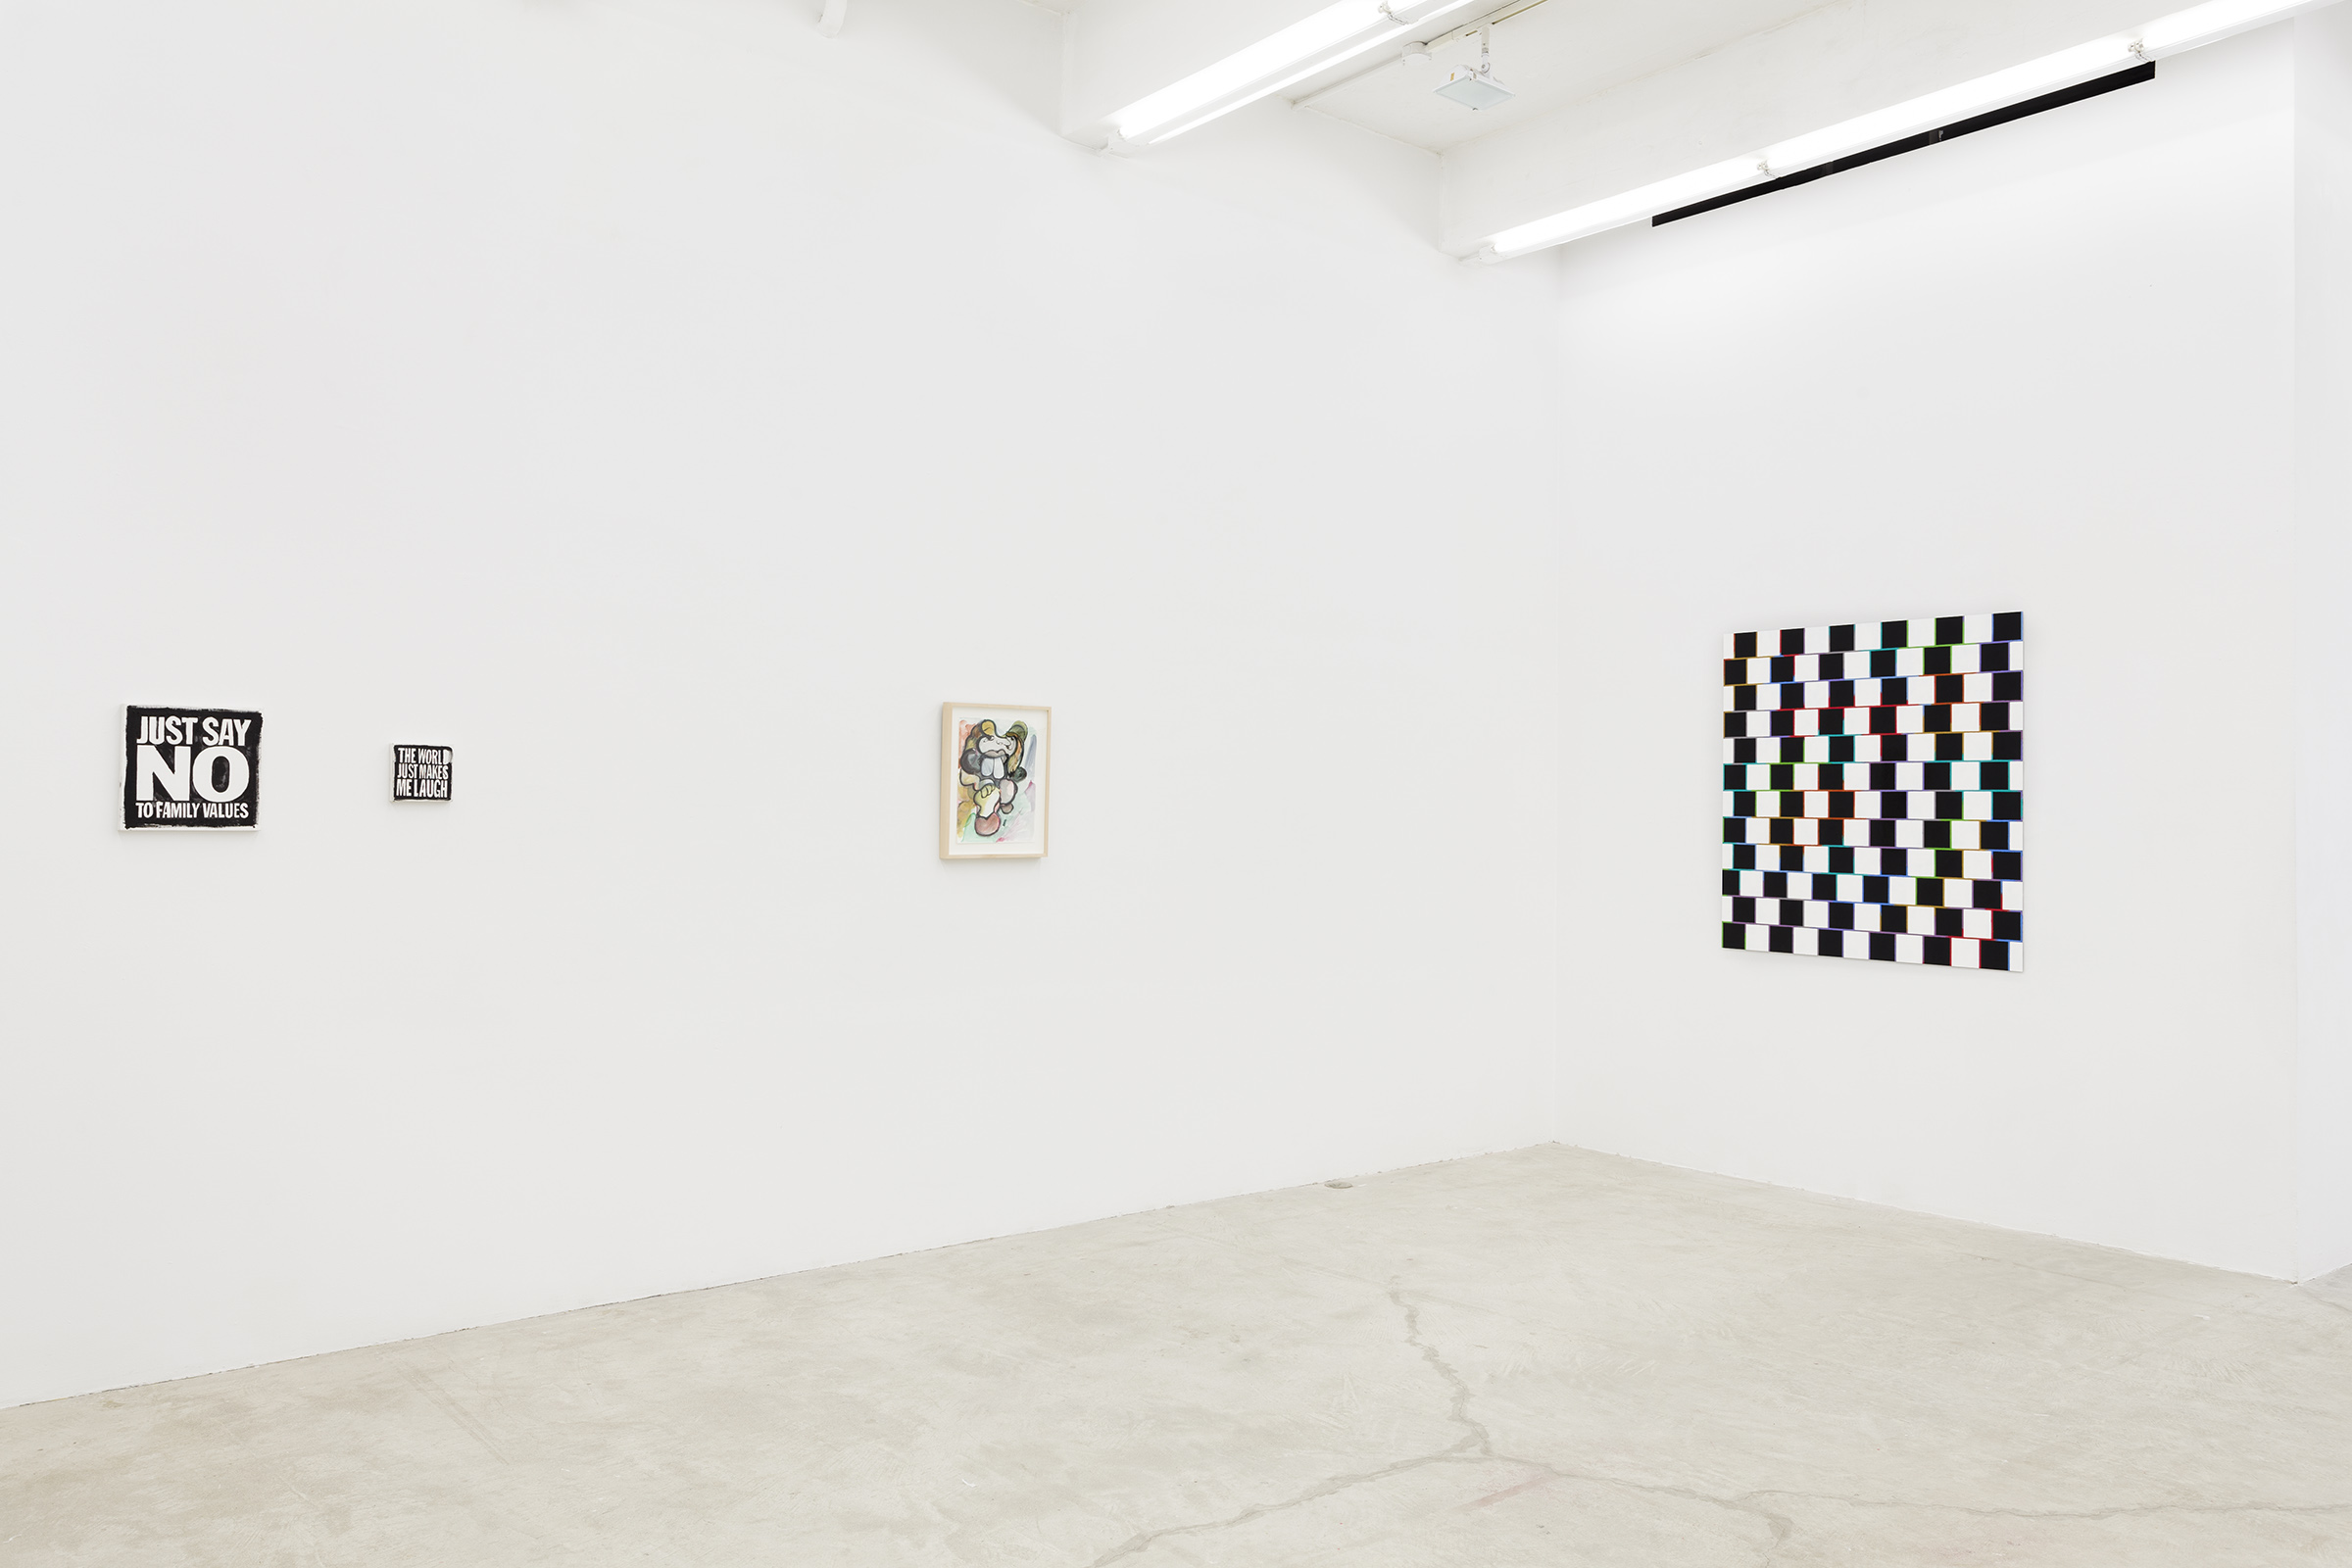 Installation view, Every day in every way I'm freely opening my senses to the beauty in myself and opening up to all the beauty around me and in all the people I will encounter , Martos Gallery, New York, 2014